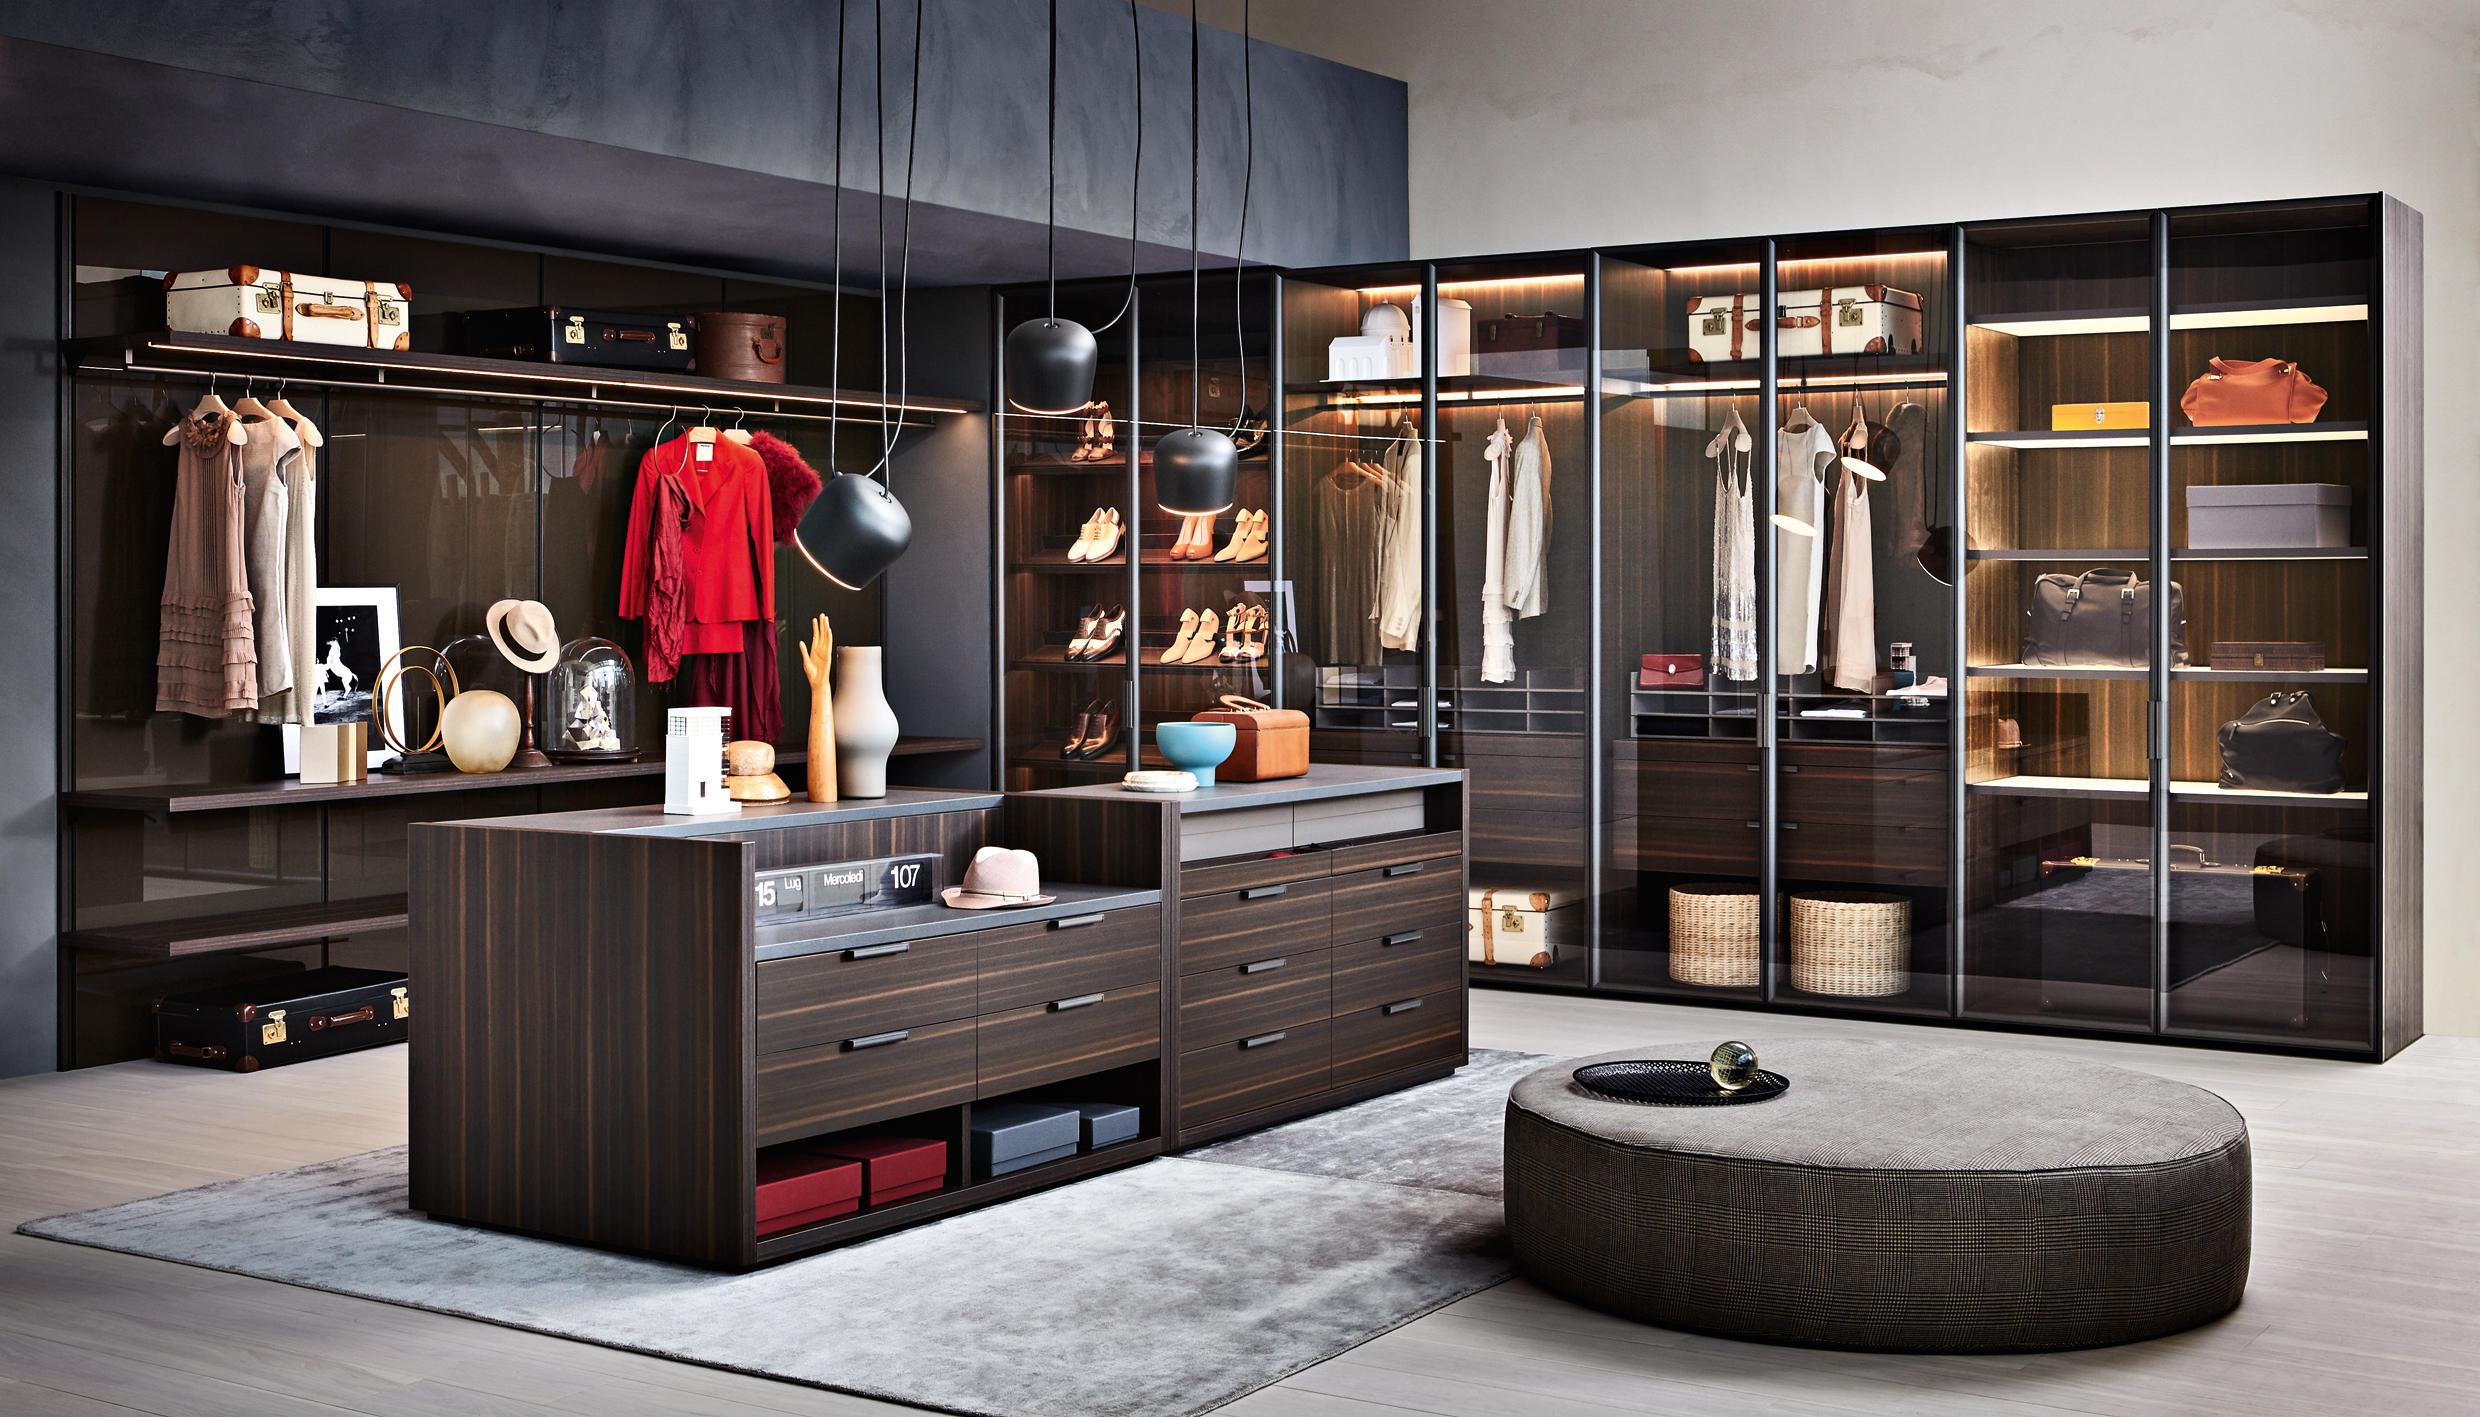 kitchens you closet transitions live elements web baths design without min cross and closets that cant custom boston